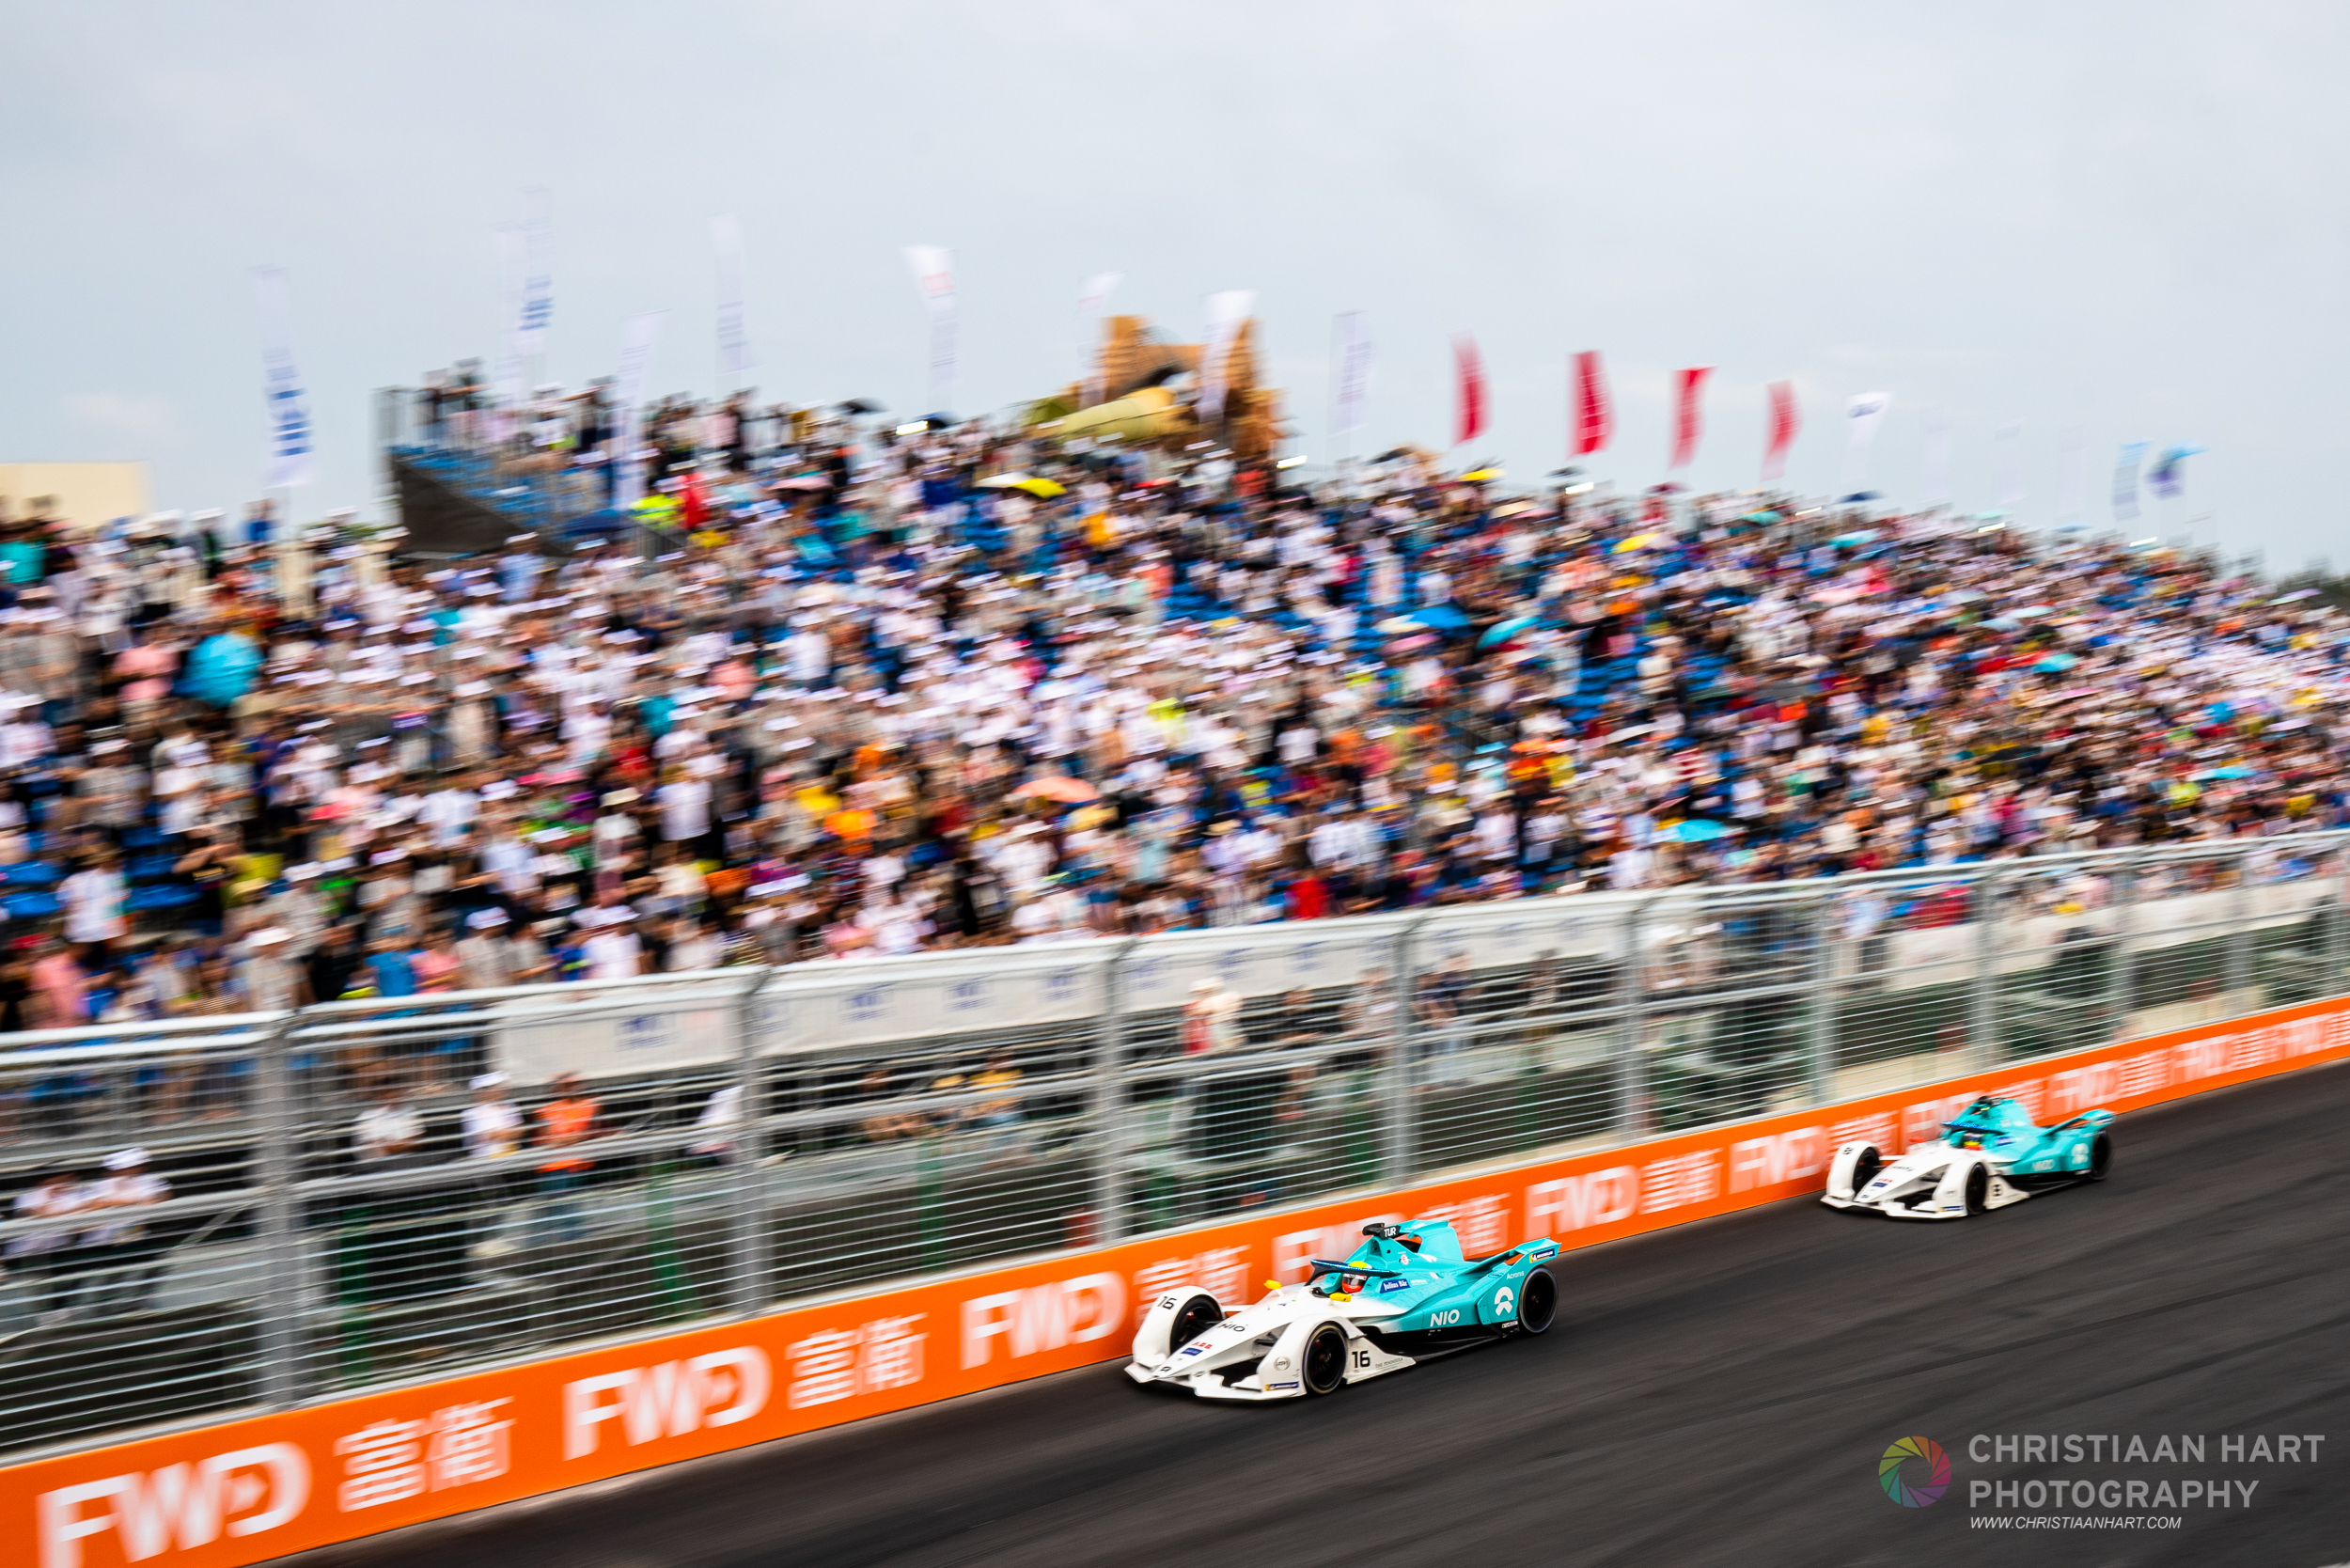 Local fans enjoyed the warm conditions at Sanyas first Formula E race.  NIO Formula E team  tackles the track in formation.